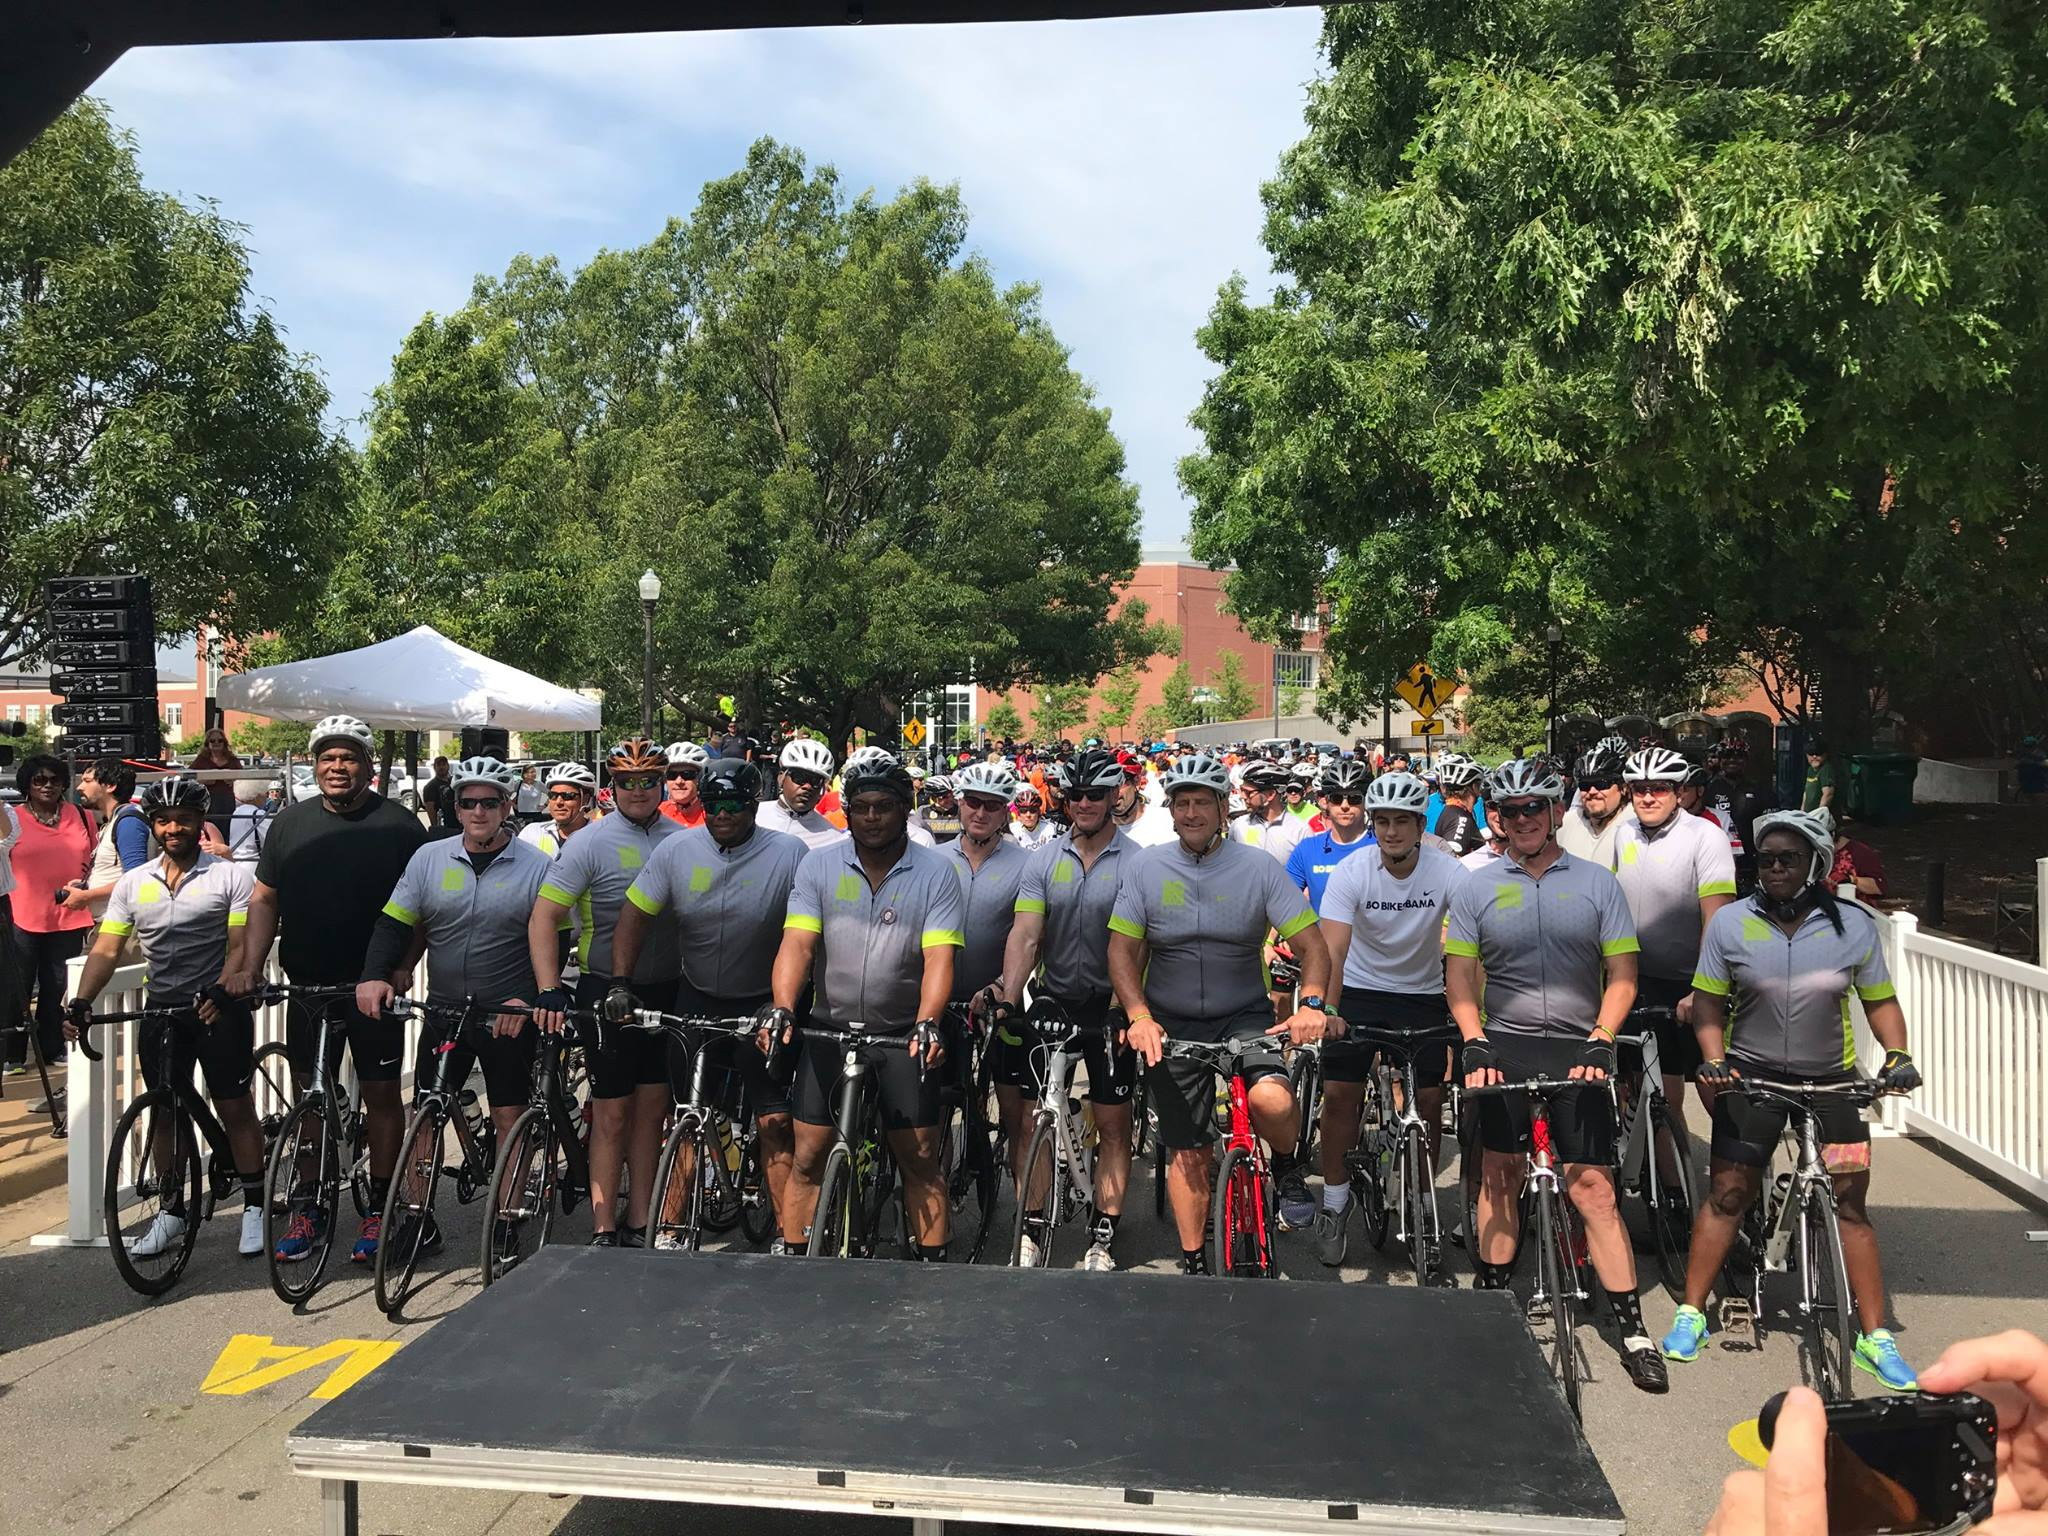 Auburn sports legend Bo Jackson brings hundreds of bike riders together to raise money for emergency relief in Alabama.